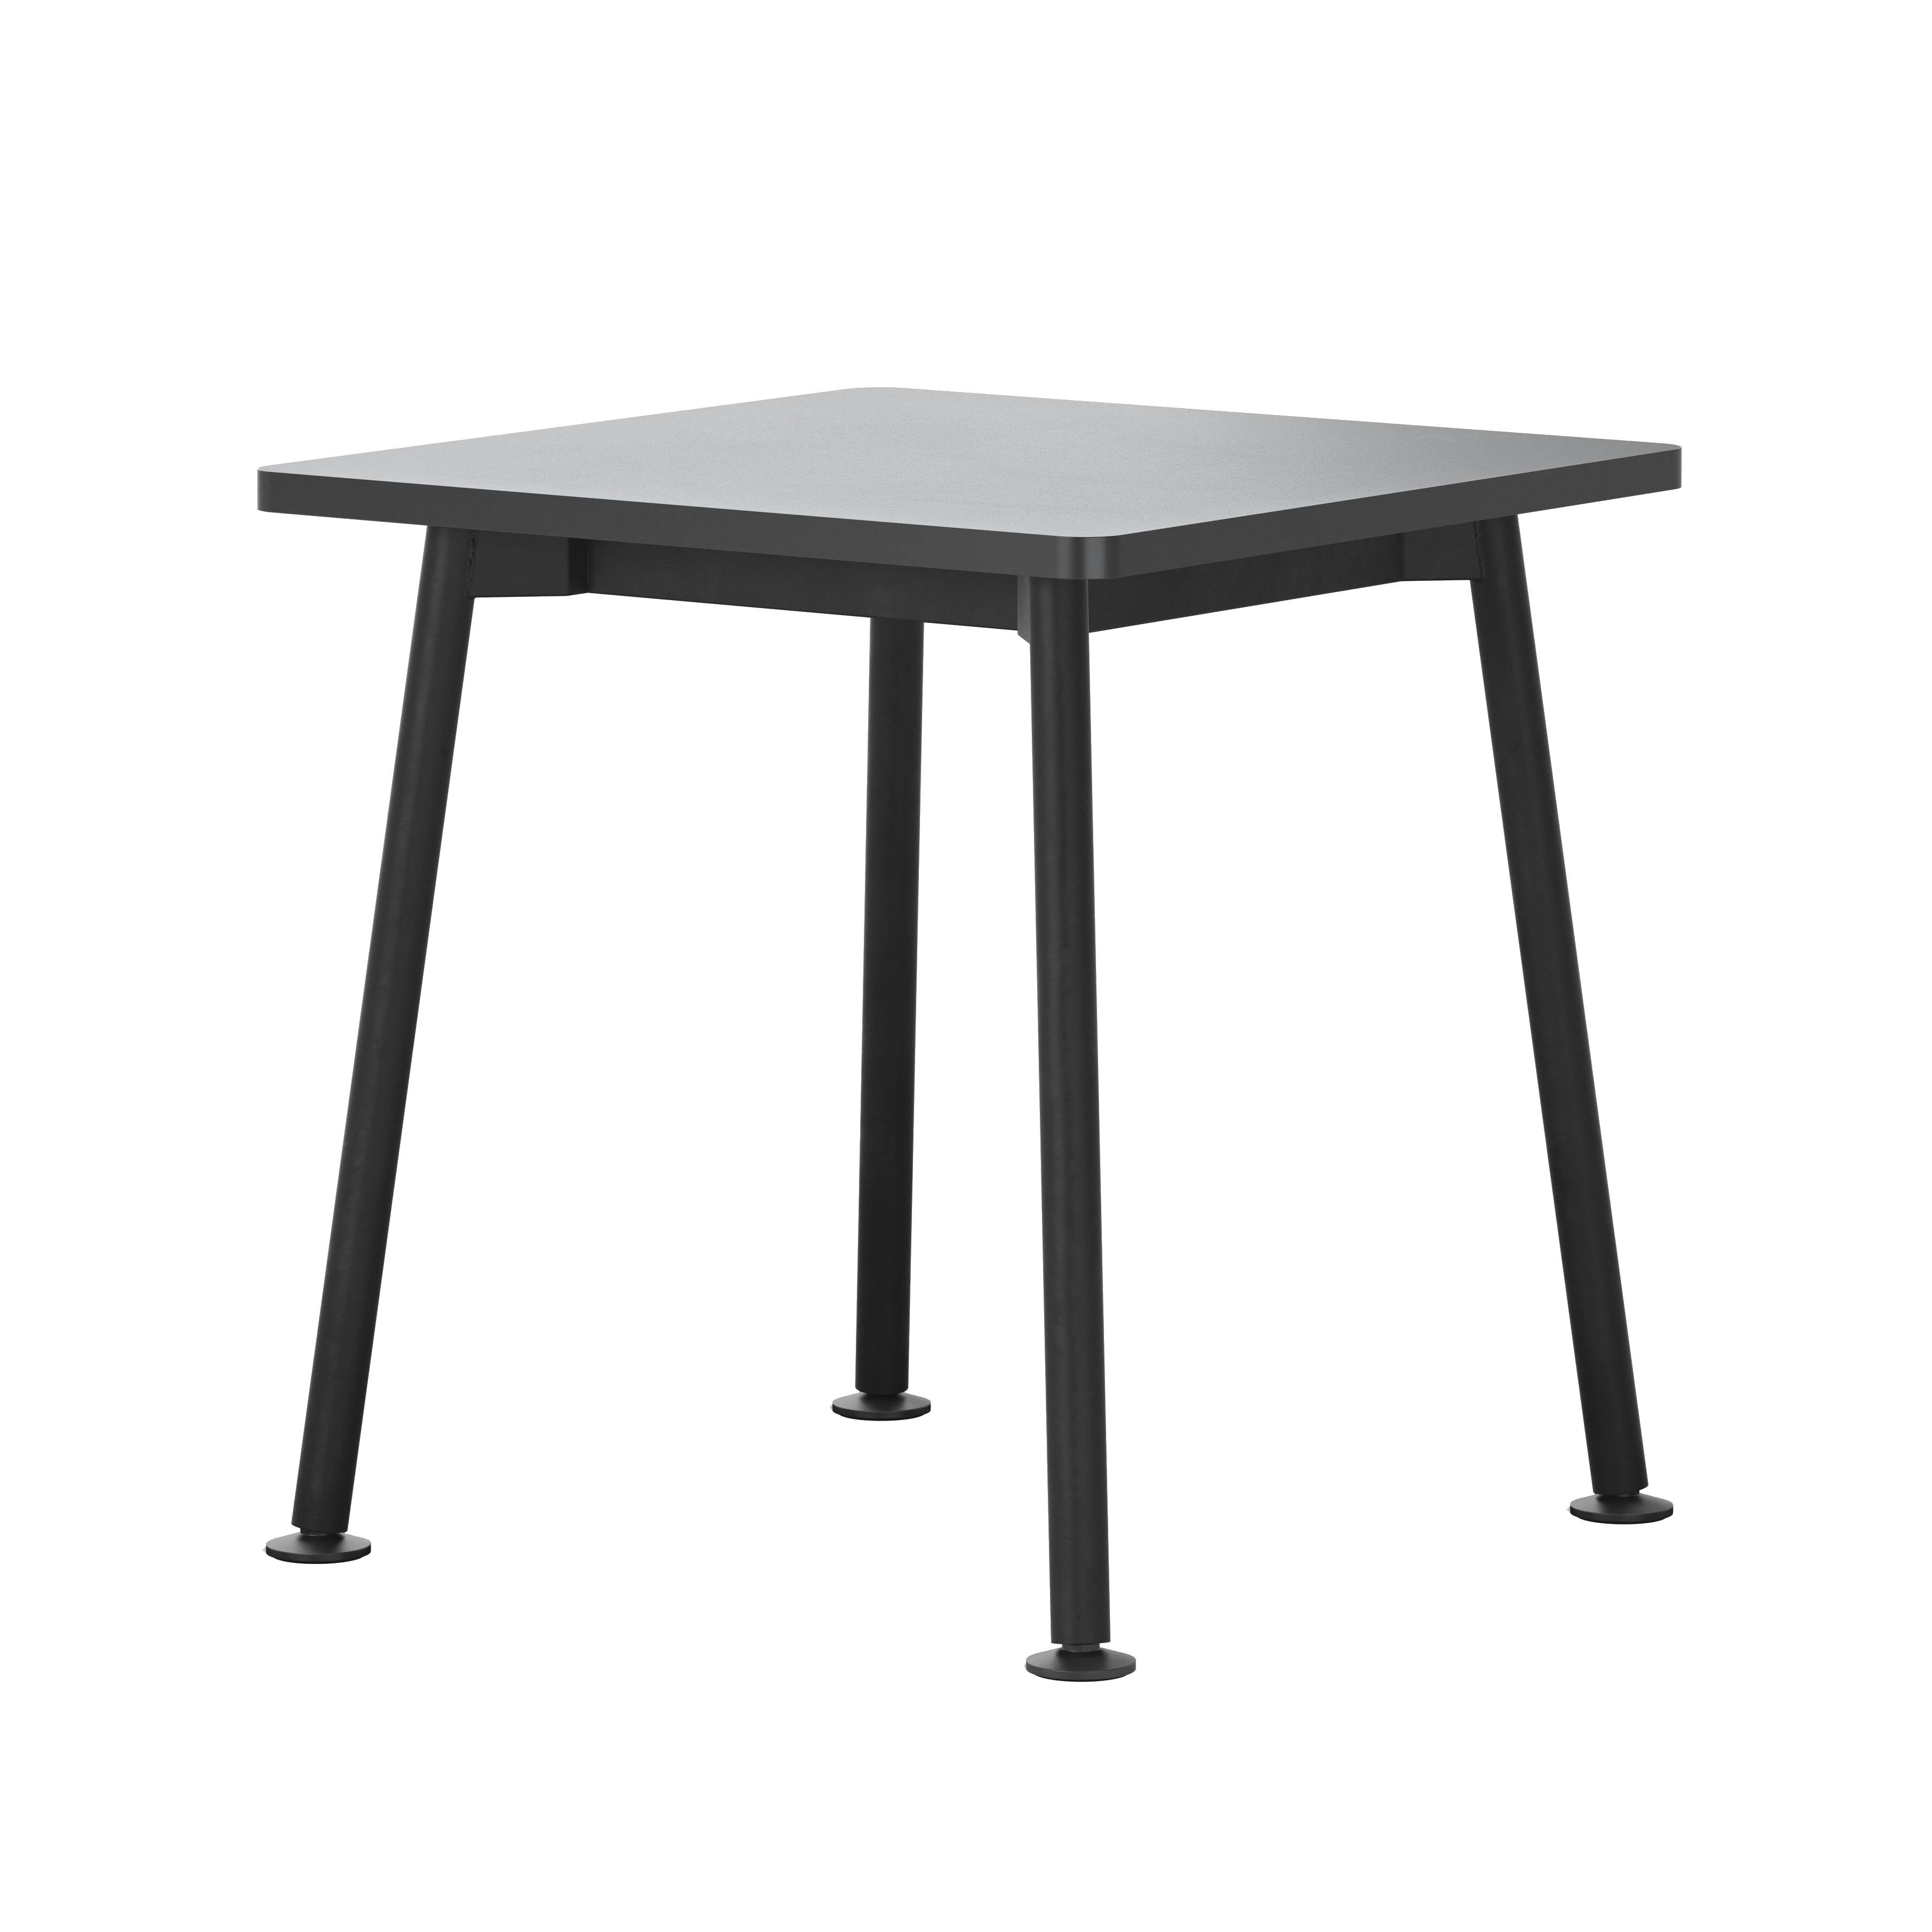 Landa Table: Square + Black Laminate